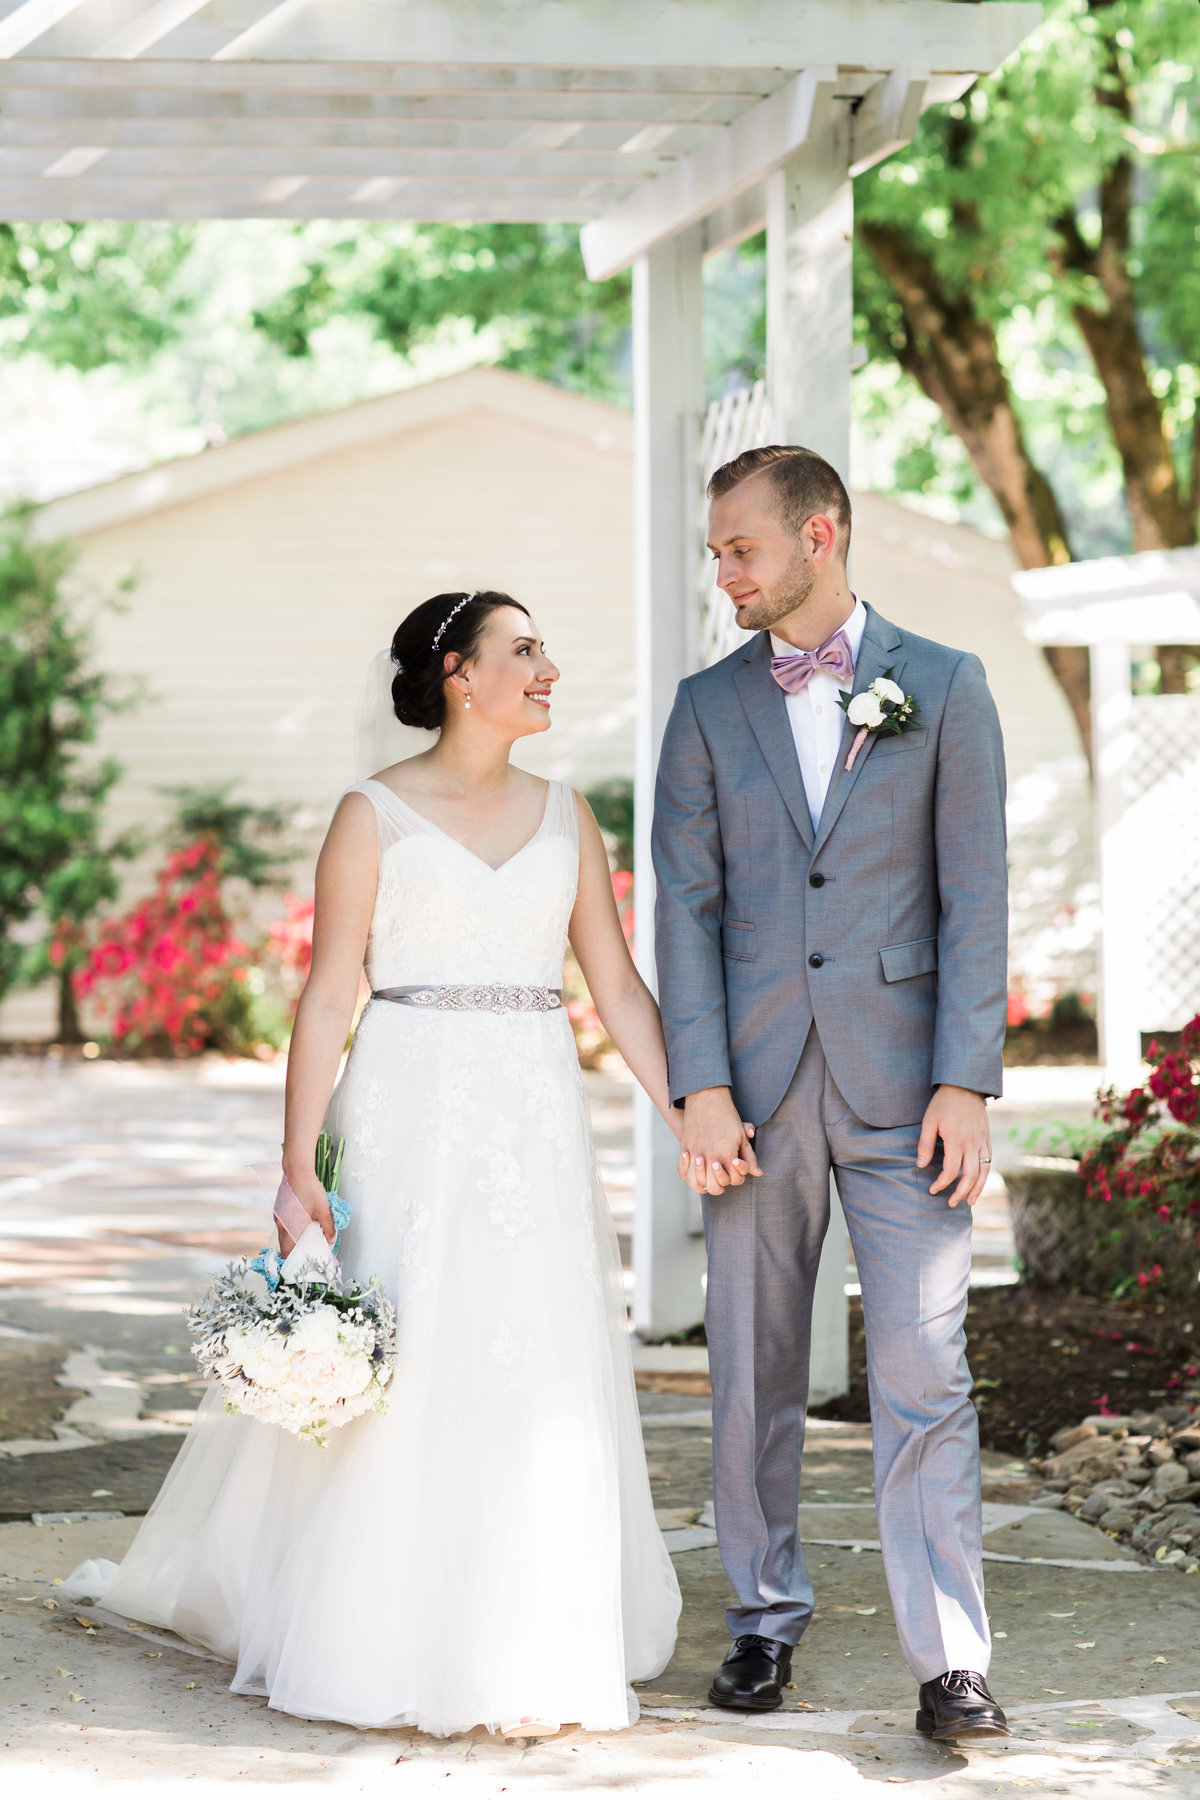 Danielle-Defayette-Photography-Daras-Garden-Knoxville-Wedding-347